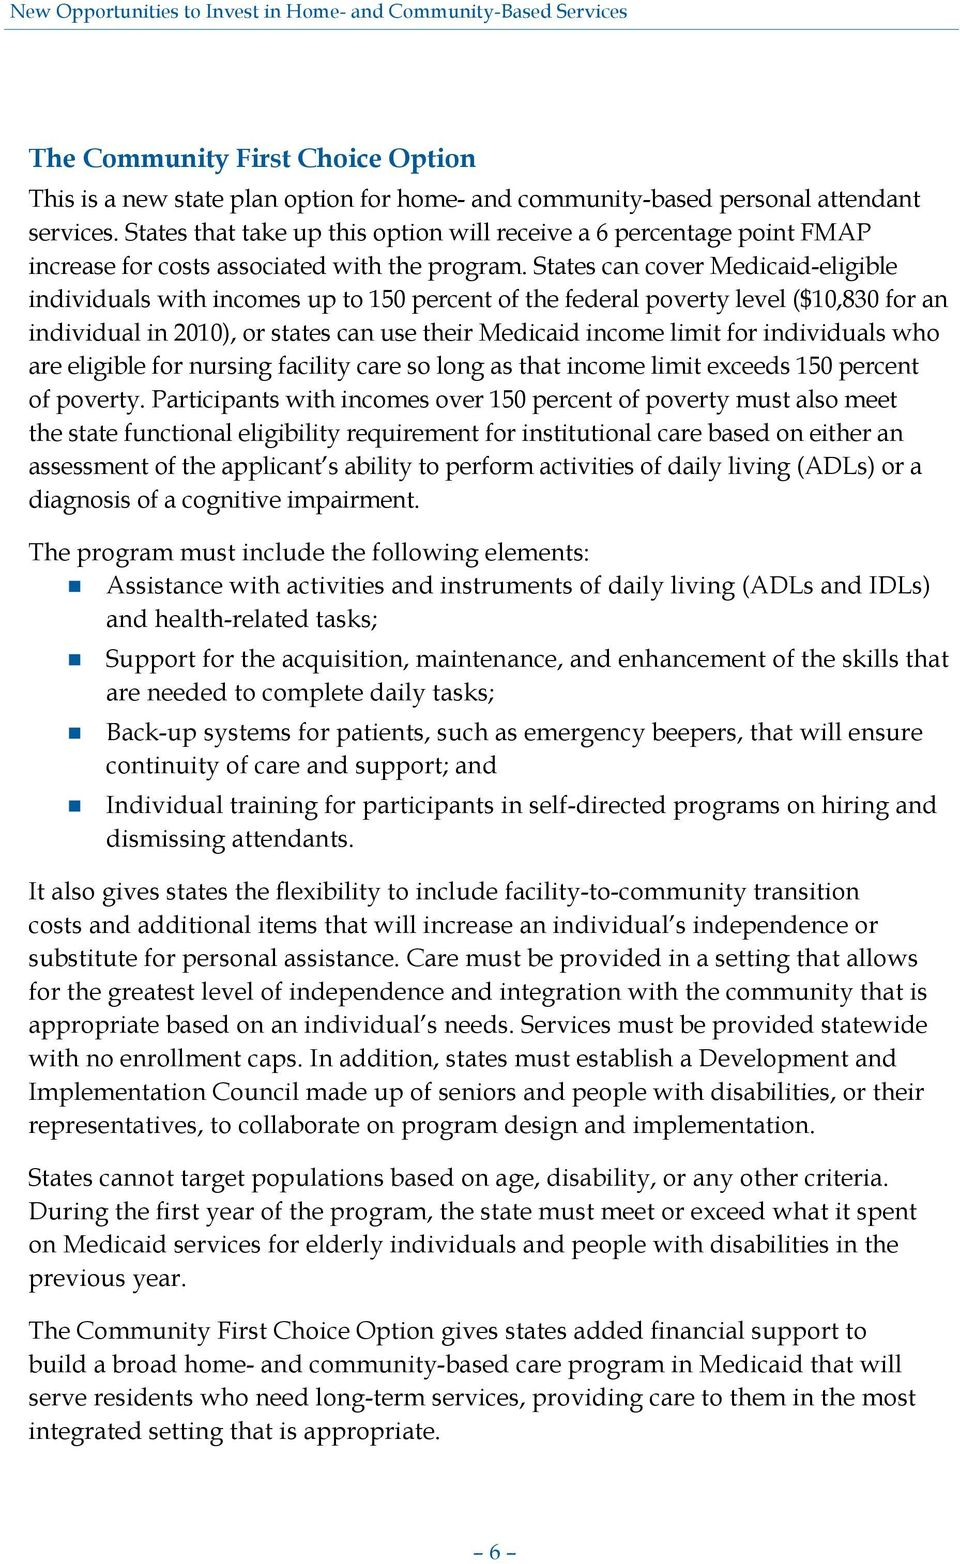 States can cover Medicaid-eligible individuals with incomes up to 150 percent of the federal poverty level ($10,830 for an individual in 2010), or states can use their Medicaid income limit for